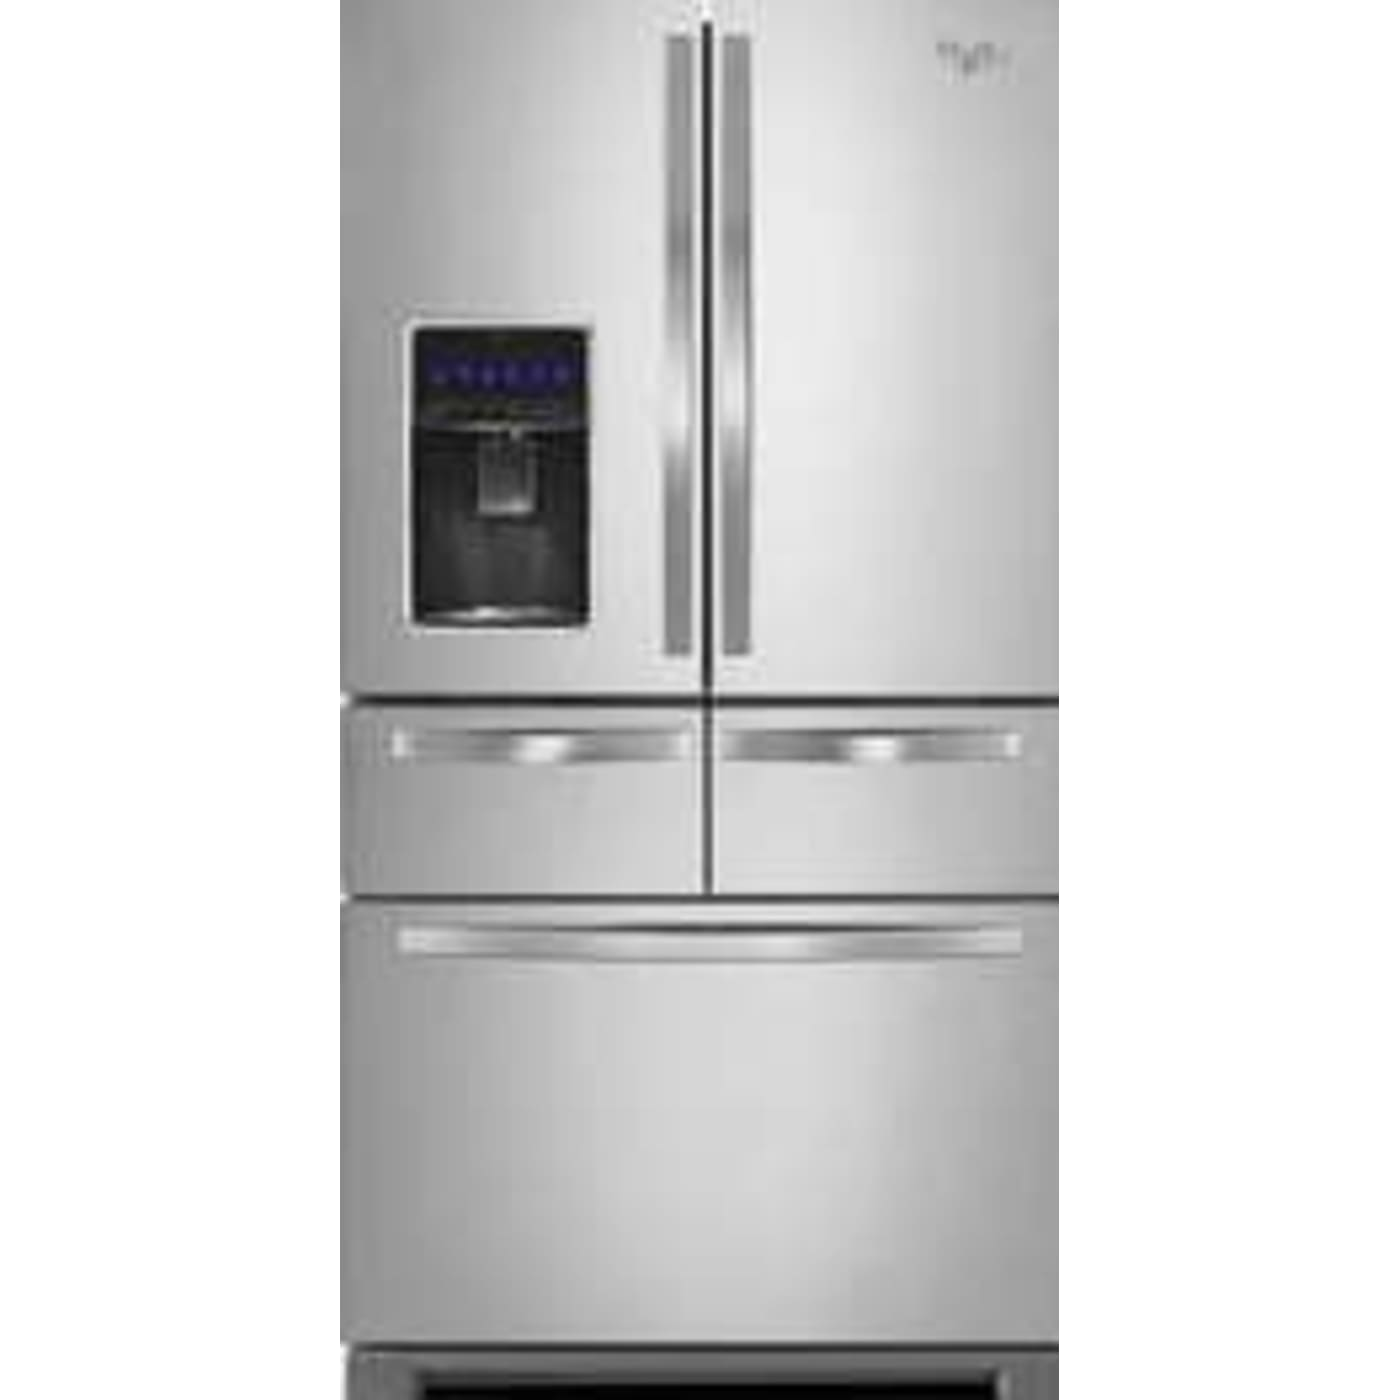 Delicieux Stainless Steel French Door Refrigerator. Whirlpool WRV986FDEM ...